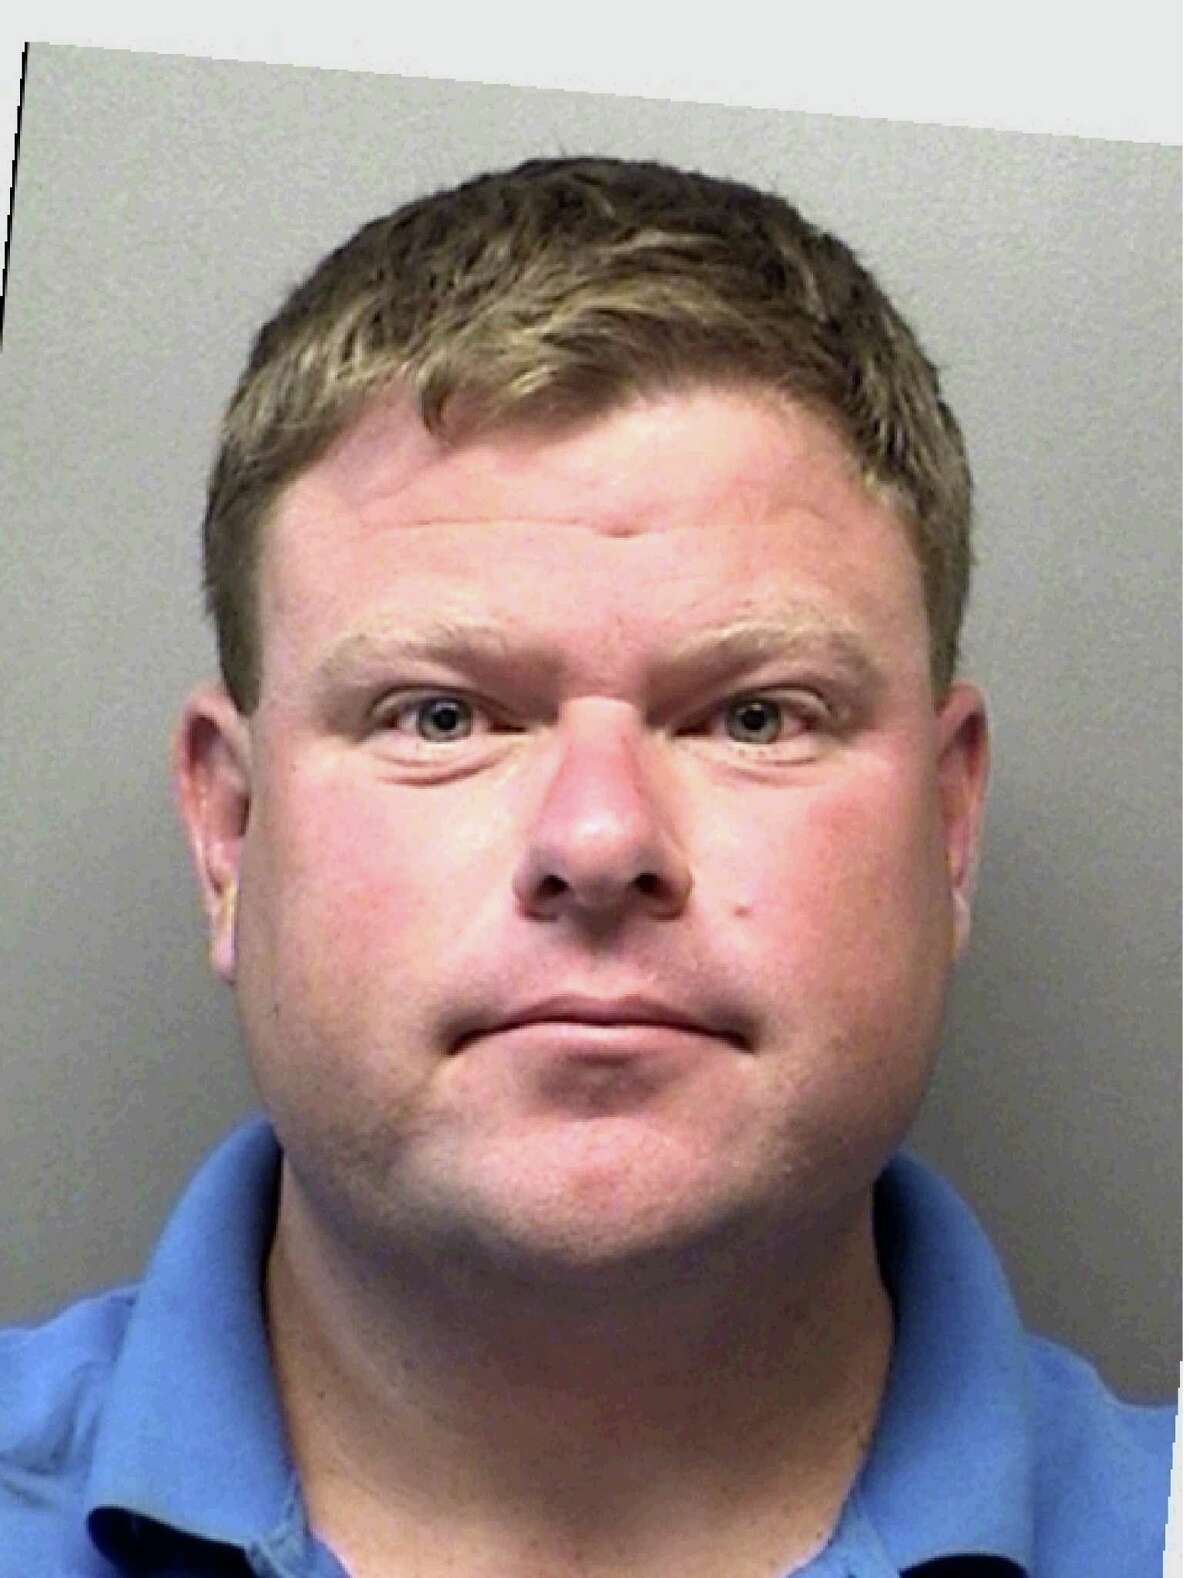 The San Antonio Fire Department has suspended Lt. Lee Michael Stanphill, 39, with two prior convictions for driving while intoxicated after he was arrested a third time in late October for allegedly driving a city-owned vehicle while intoxicated in Bandera County. He has been charged with driving while intoxicated - third offense or more, a third degree felony punishable by up to ten years in prison and a maximum $10,000 fine. Pictured, Stanphill's mugshot from a prior DWI arrest in Kendall County.